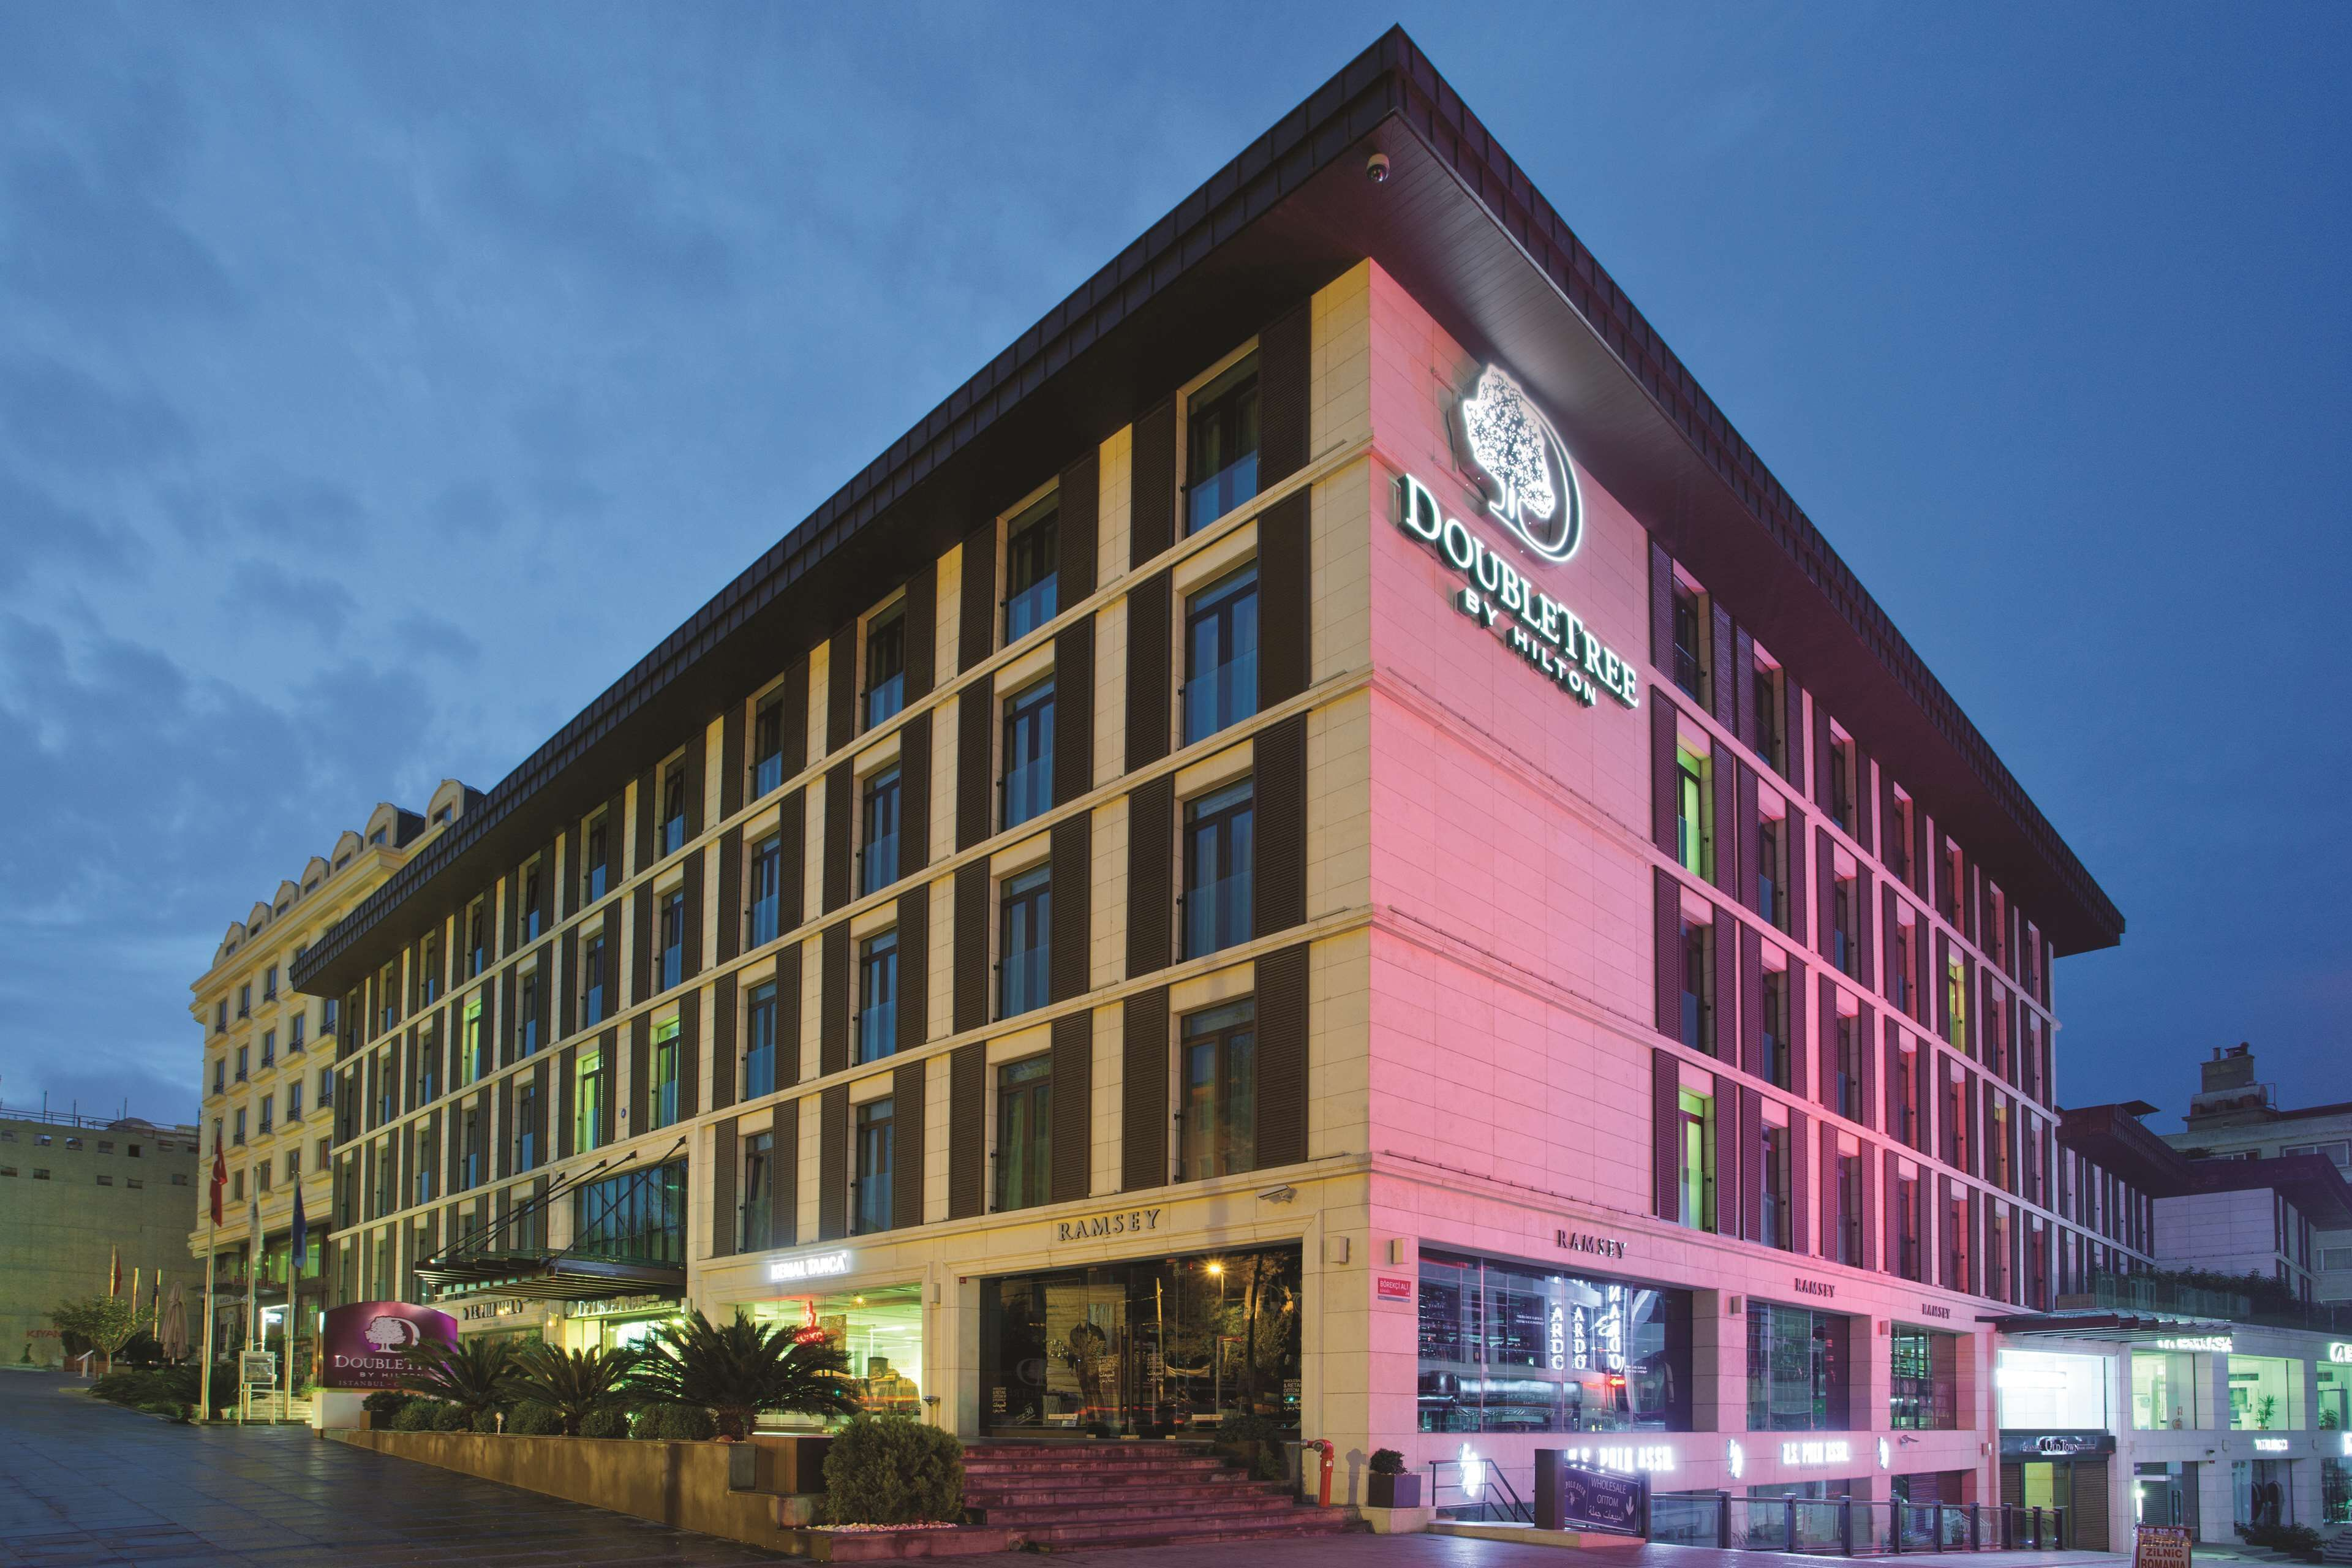 Doubletree By Hilton Old Town